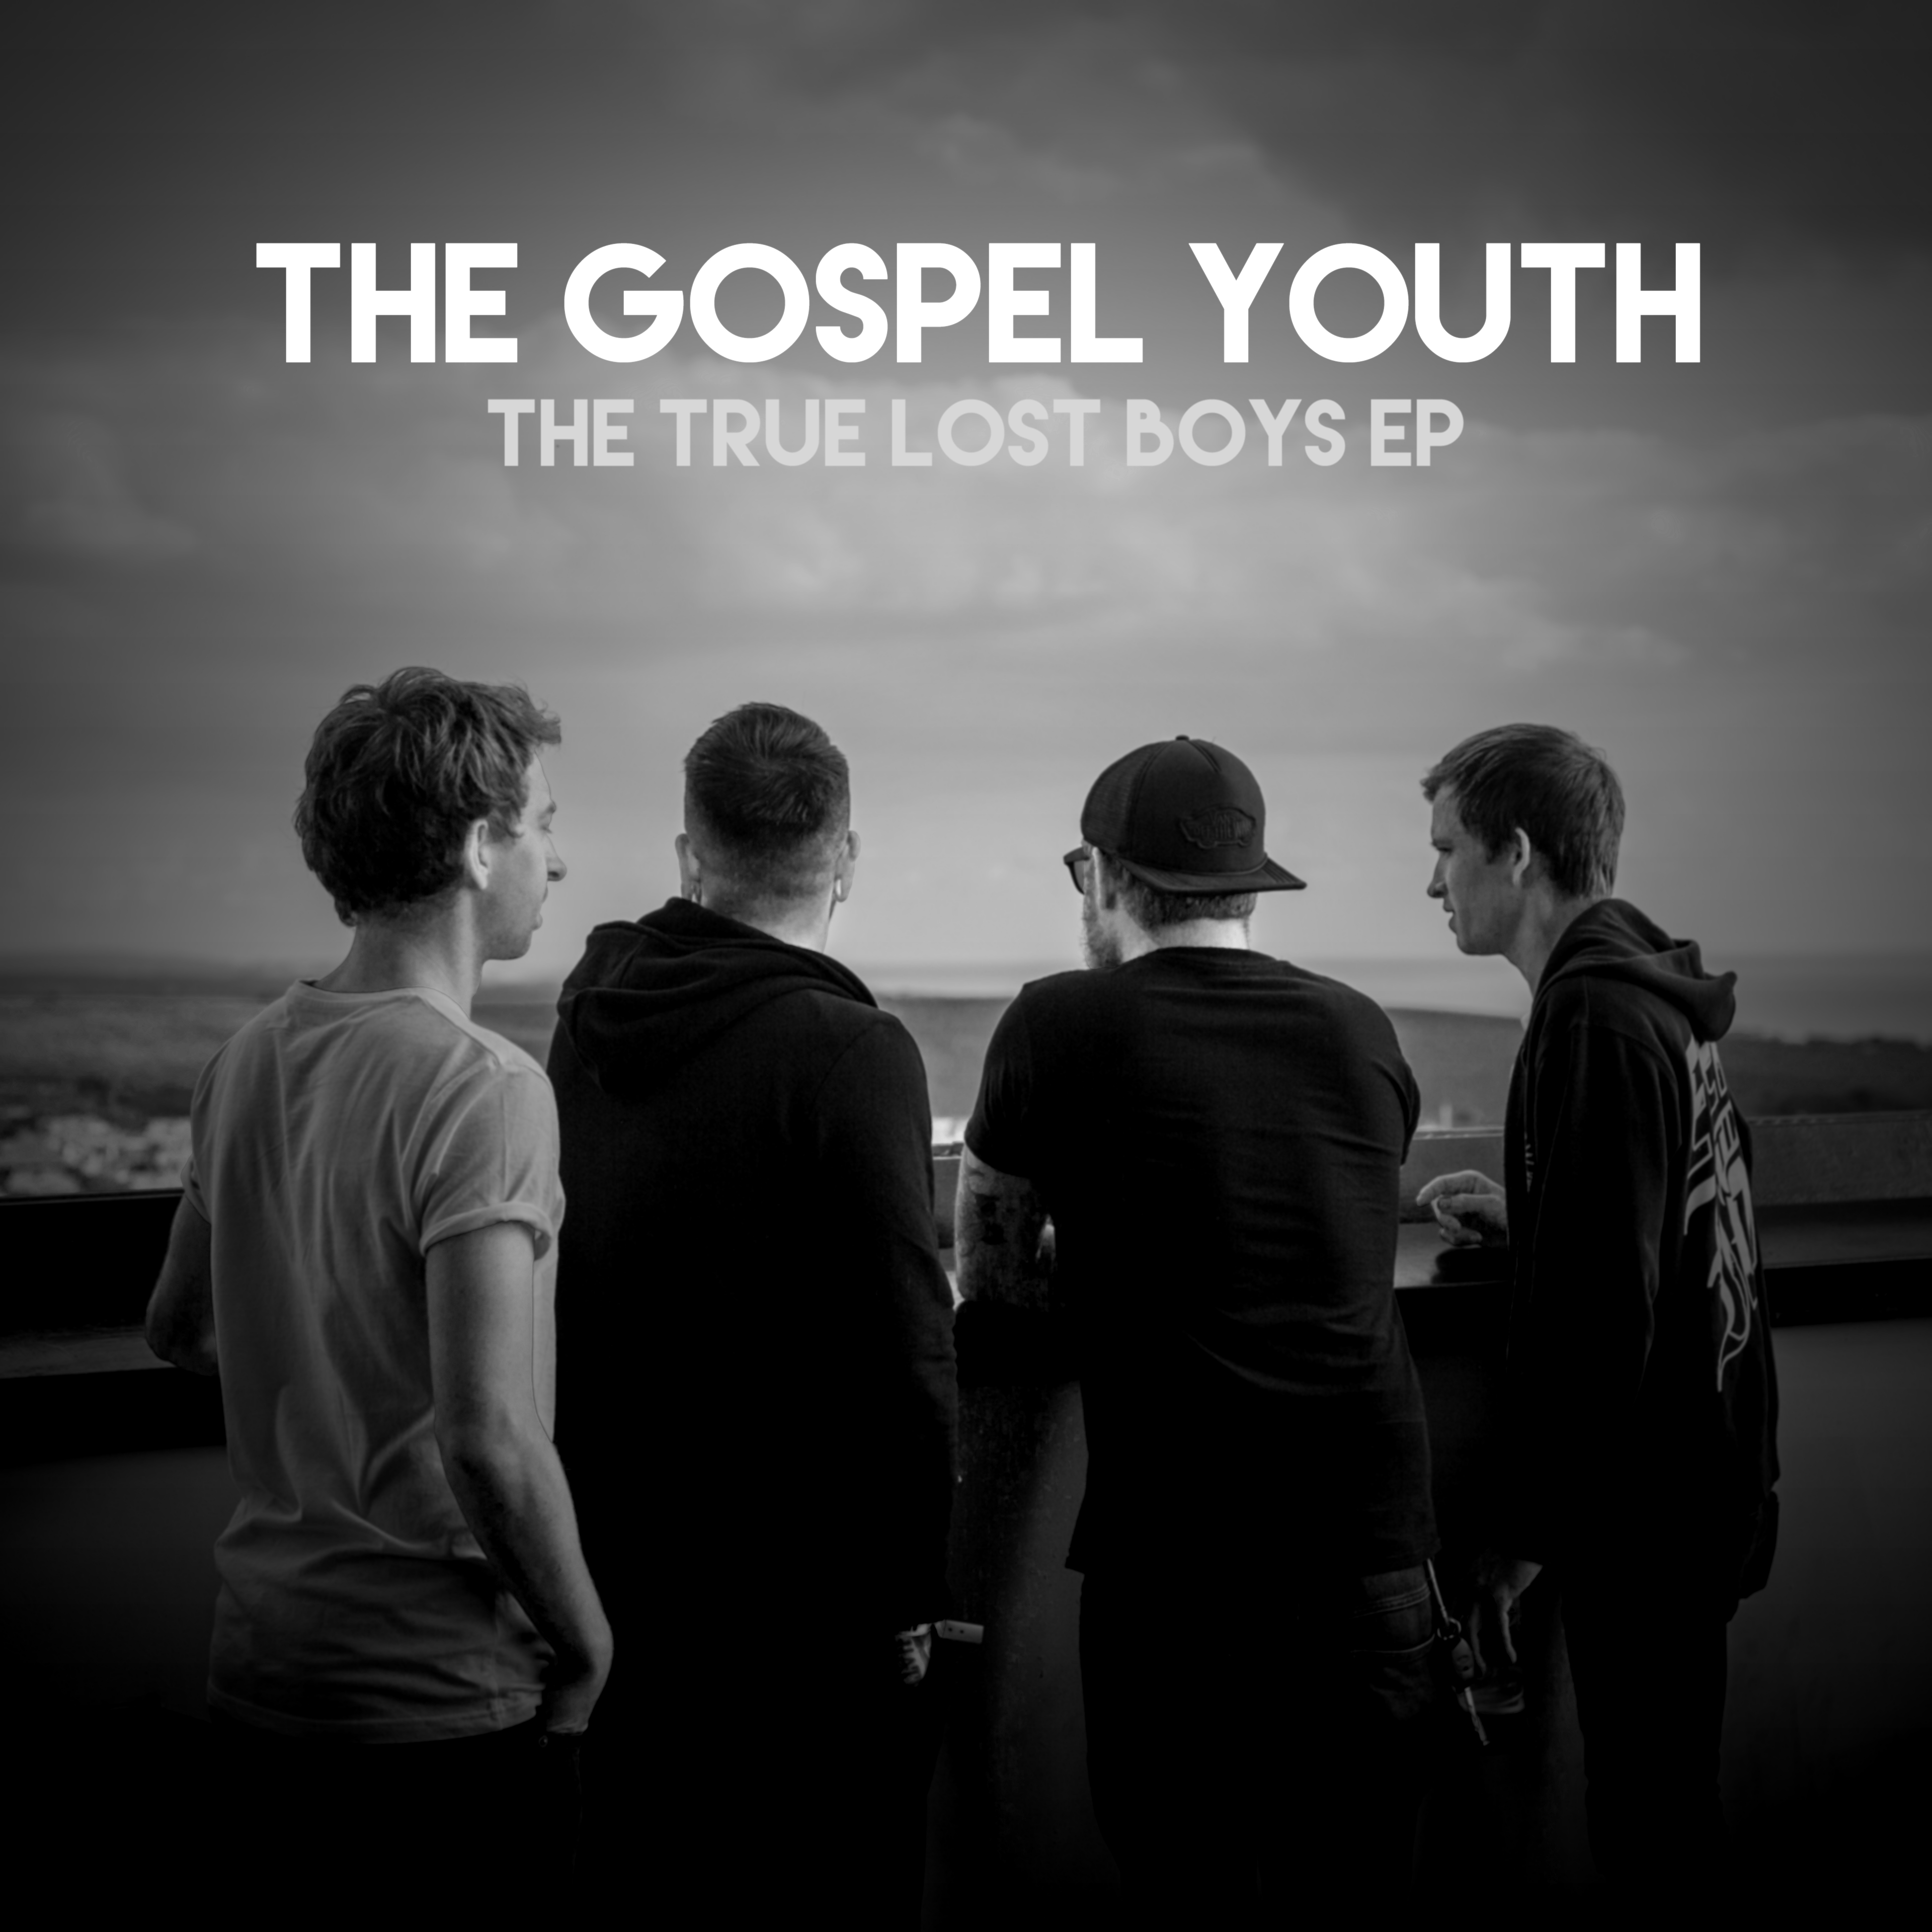 The Gospel Youth - The True Lost Boys EP